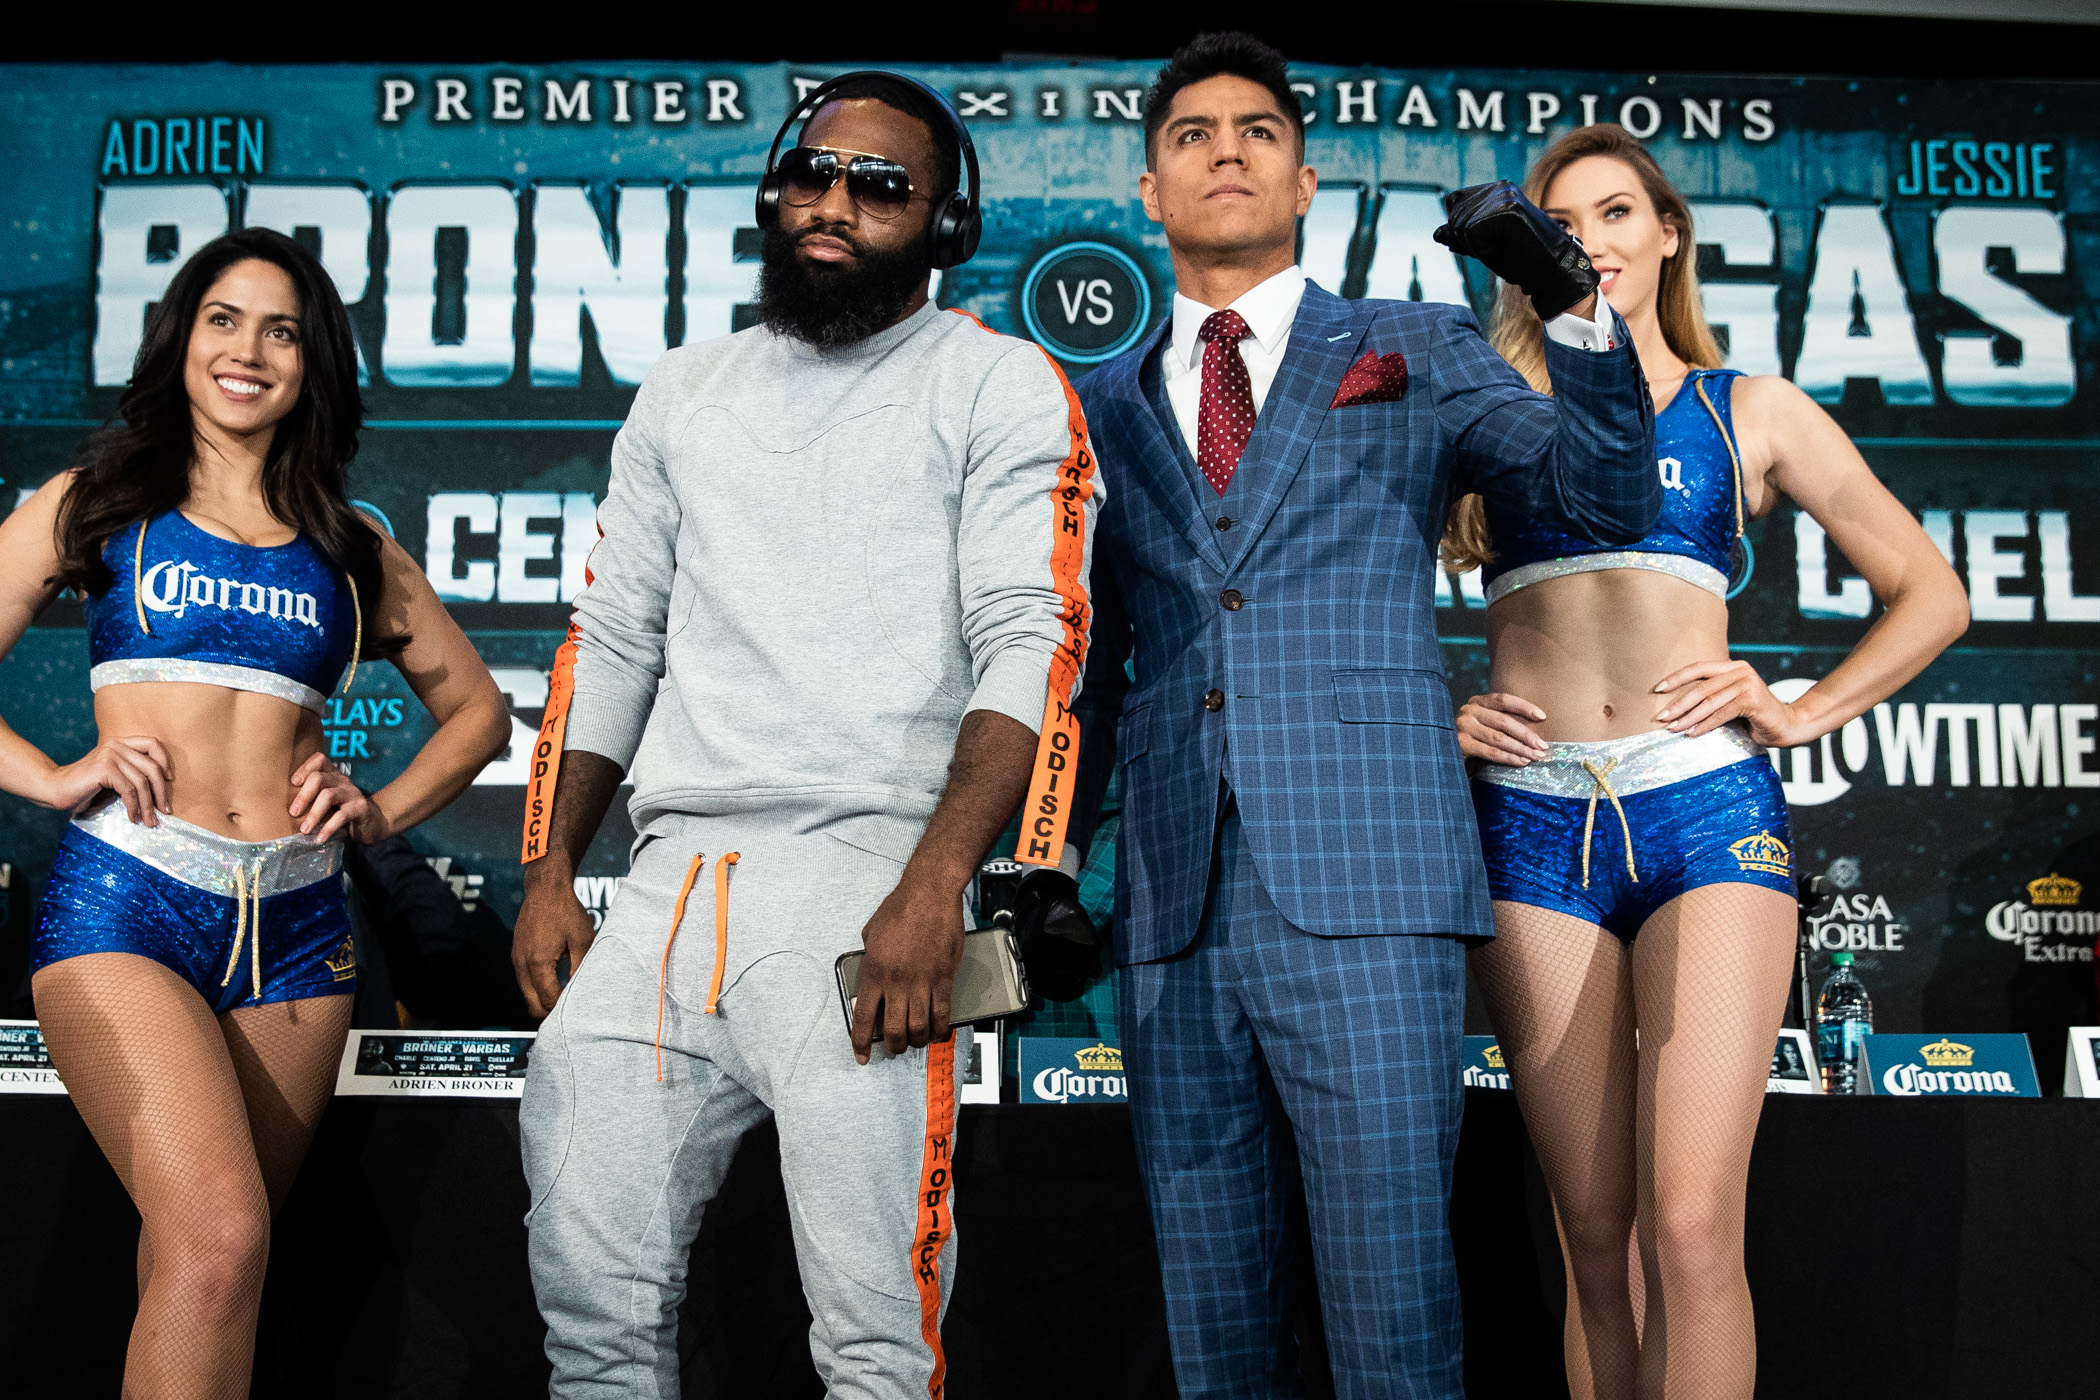 Broner-Vargas fight to majority draw; Jermall Charlo shines — Showtime boxing results